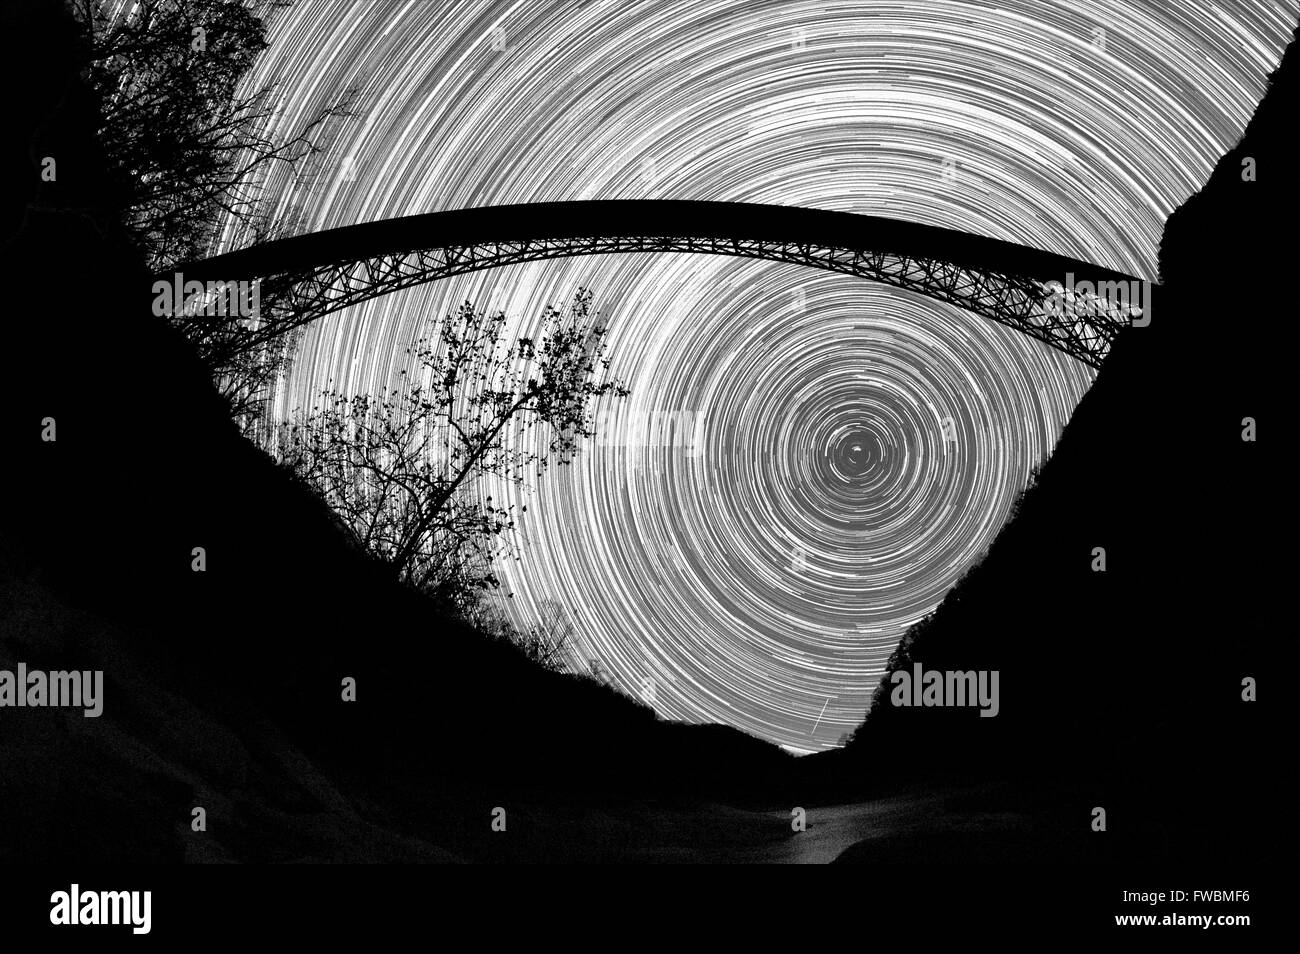 The movement of the stars hang frozen in the sky below a giant arch steel bridge over a gorge in black and white, - Stock Image